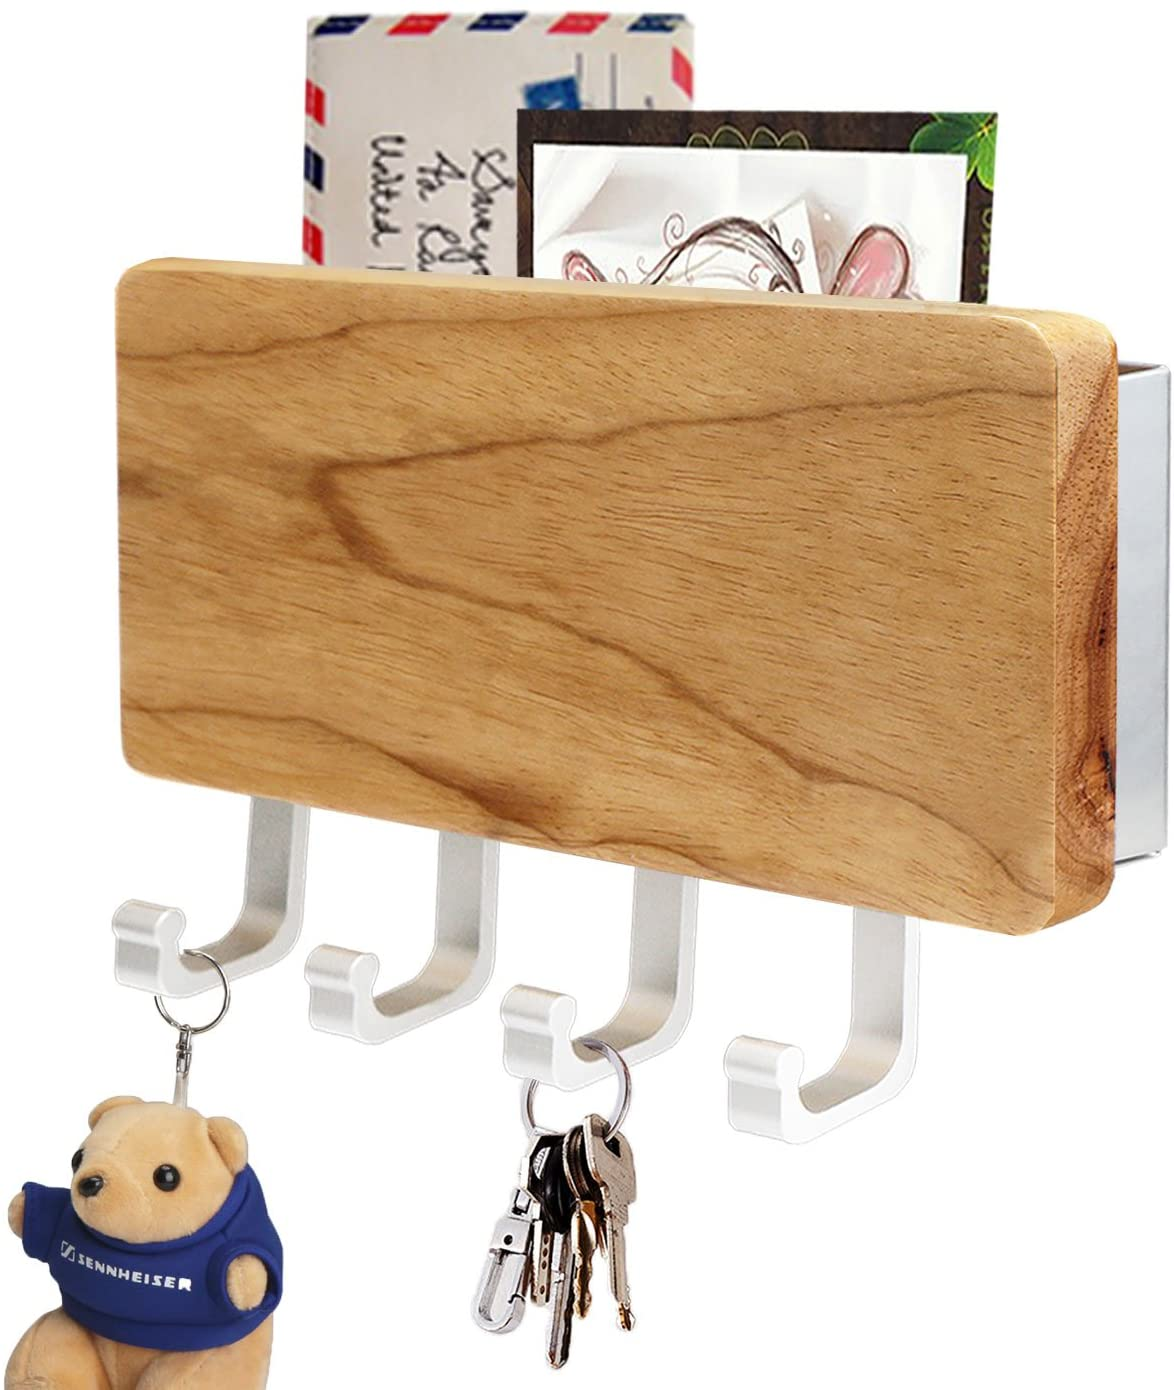 Wooden Key Holder, Segarty Wood Key Hooks Decorative for Wall with Shelf, Wall Mounted Key Hangers Keychain Rack Keyholder for Bedroom Bathroom Office Kitchen Entryway Mails Hanging Key Wall Organizer